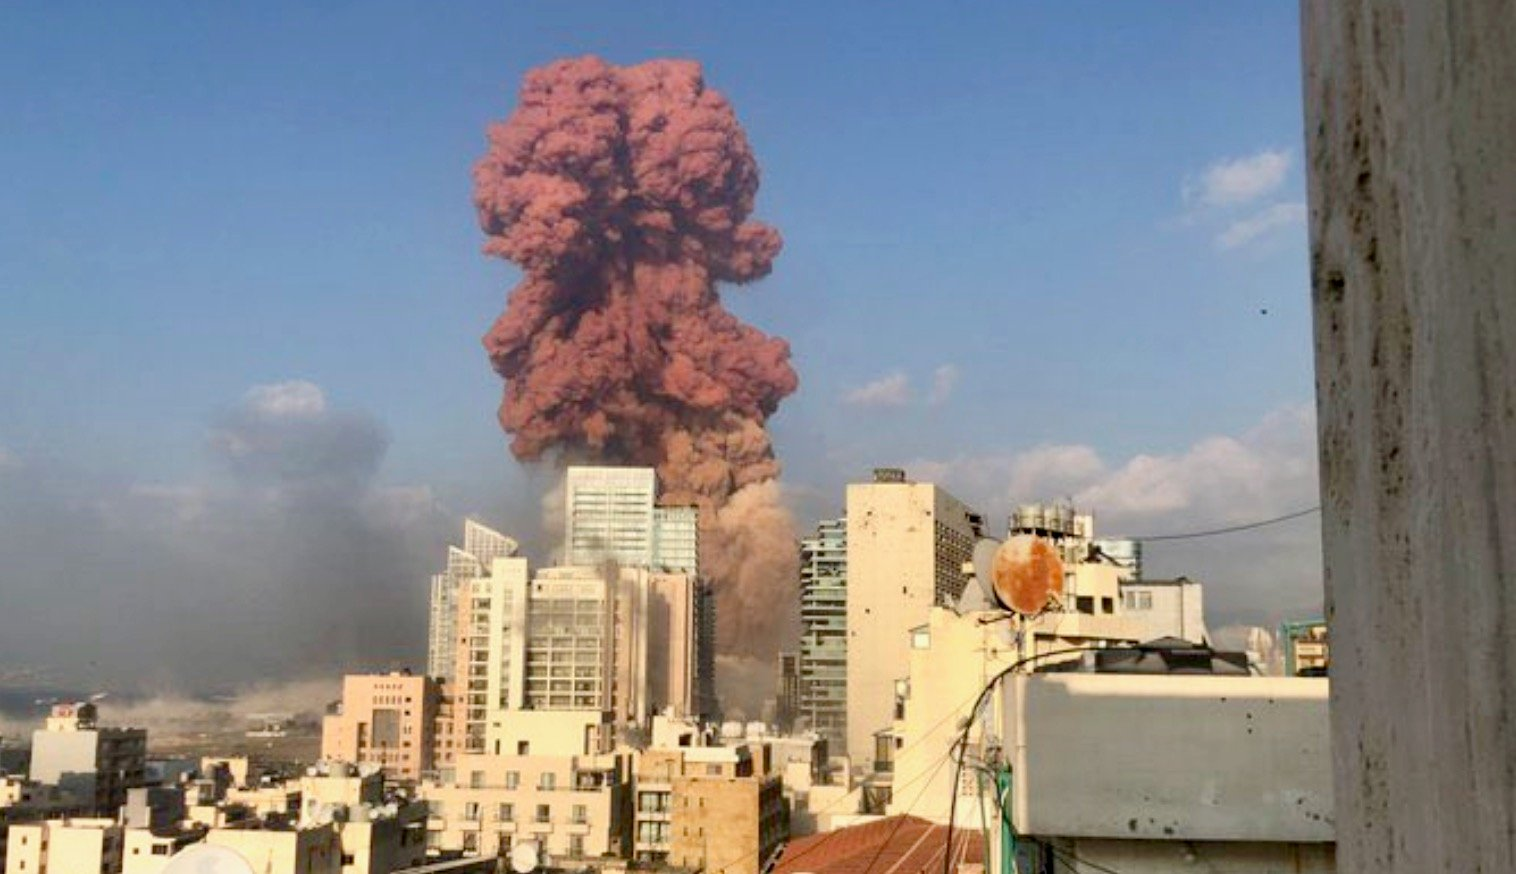 Beirut explosion: See Aftermath of the explosion in Beirut ...